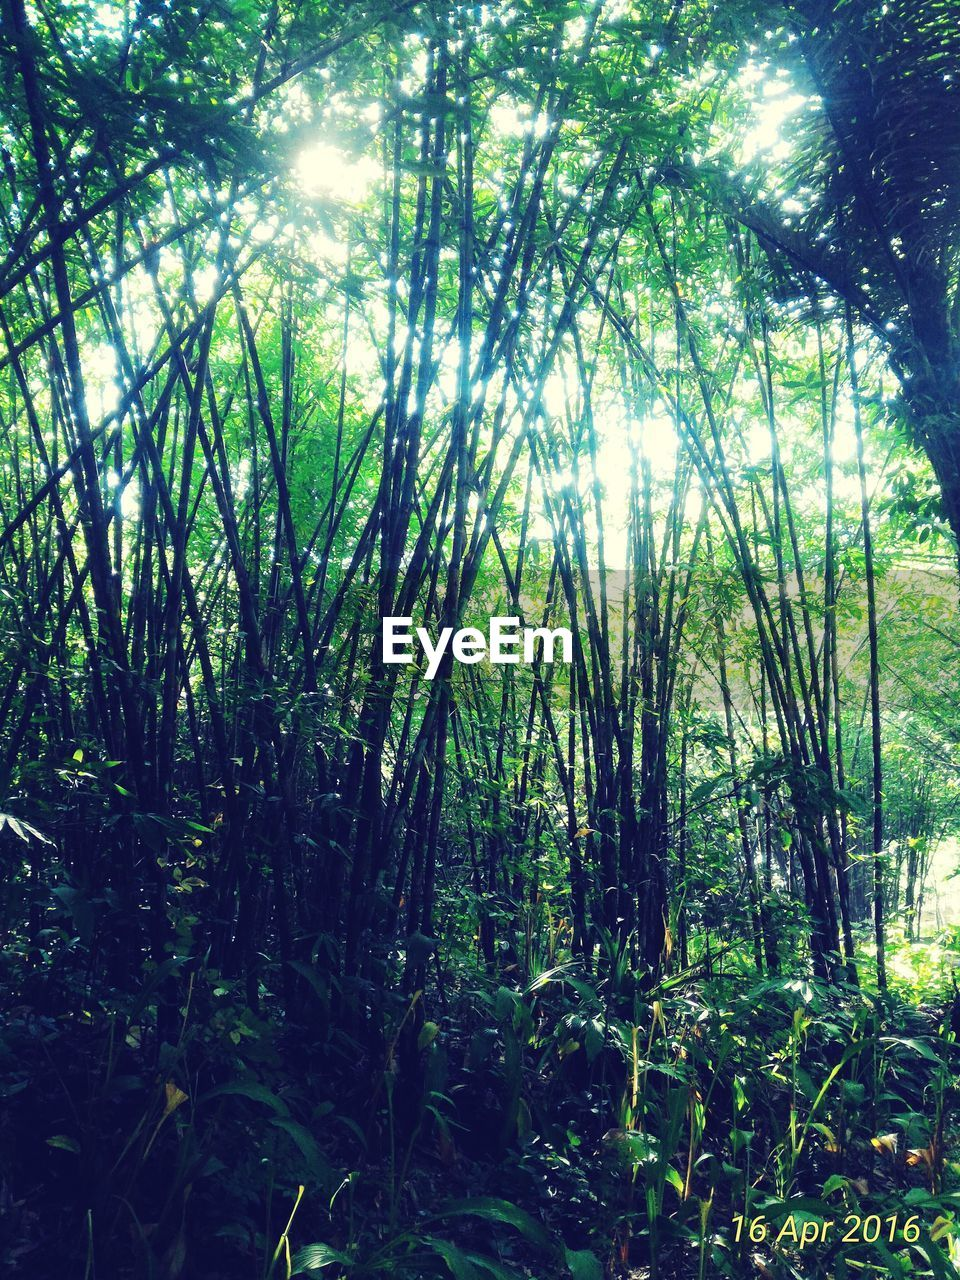 plant, forest, tree, land, growth, tranquility, beauty in nature, nature, sunlight, day, no people, green color, woodland, scenics - nature, tranquil scene, outdoors, non-urban scene, environment, foliage, lush foliage, bamboo - plant, rainforest